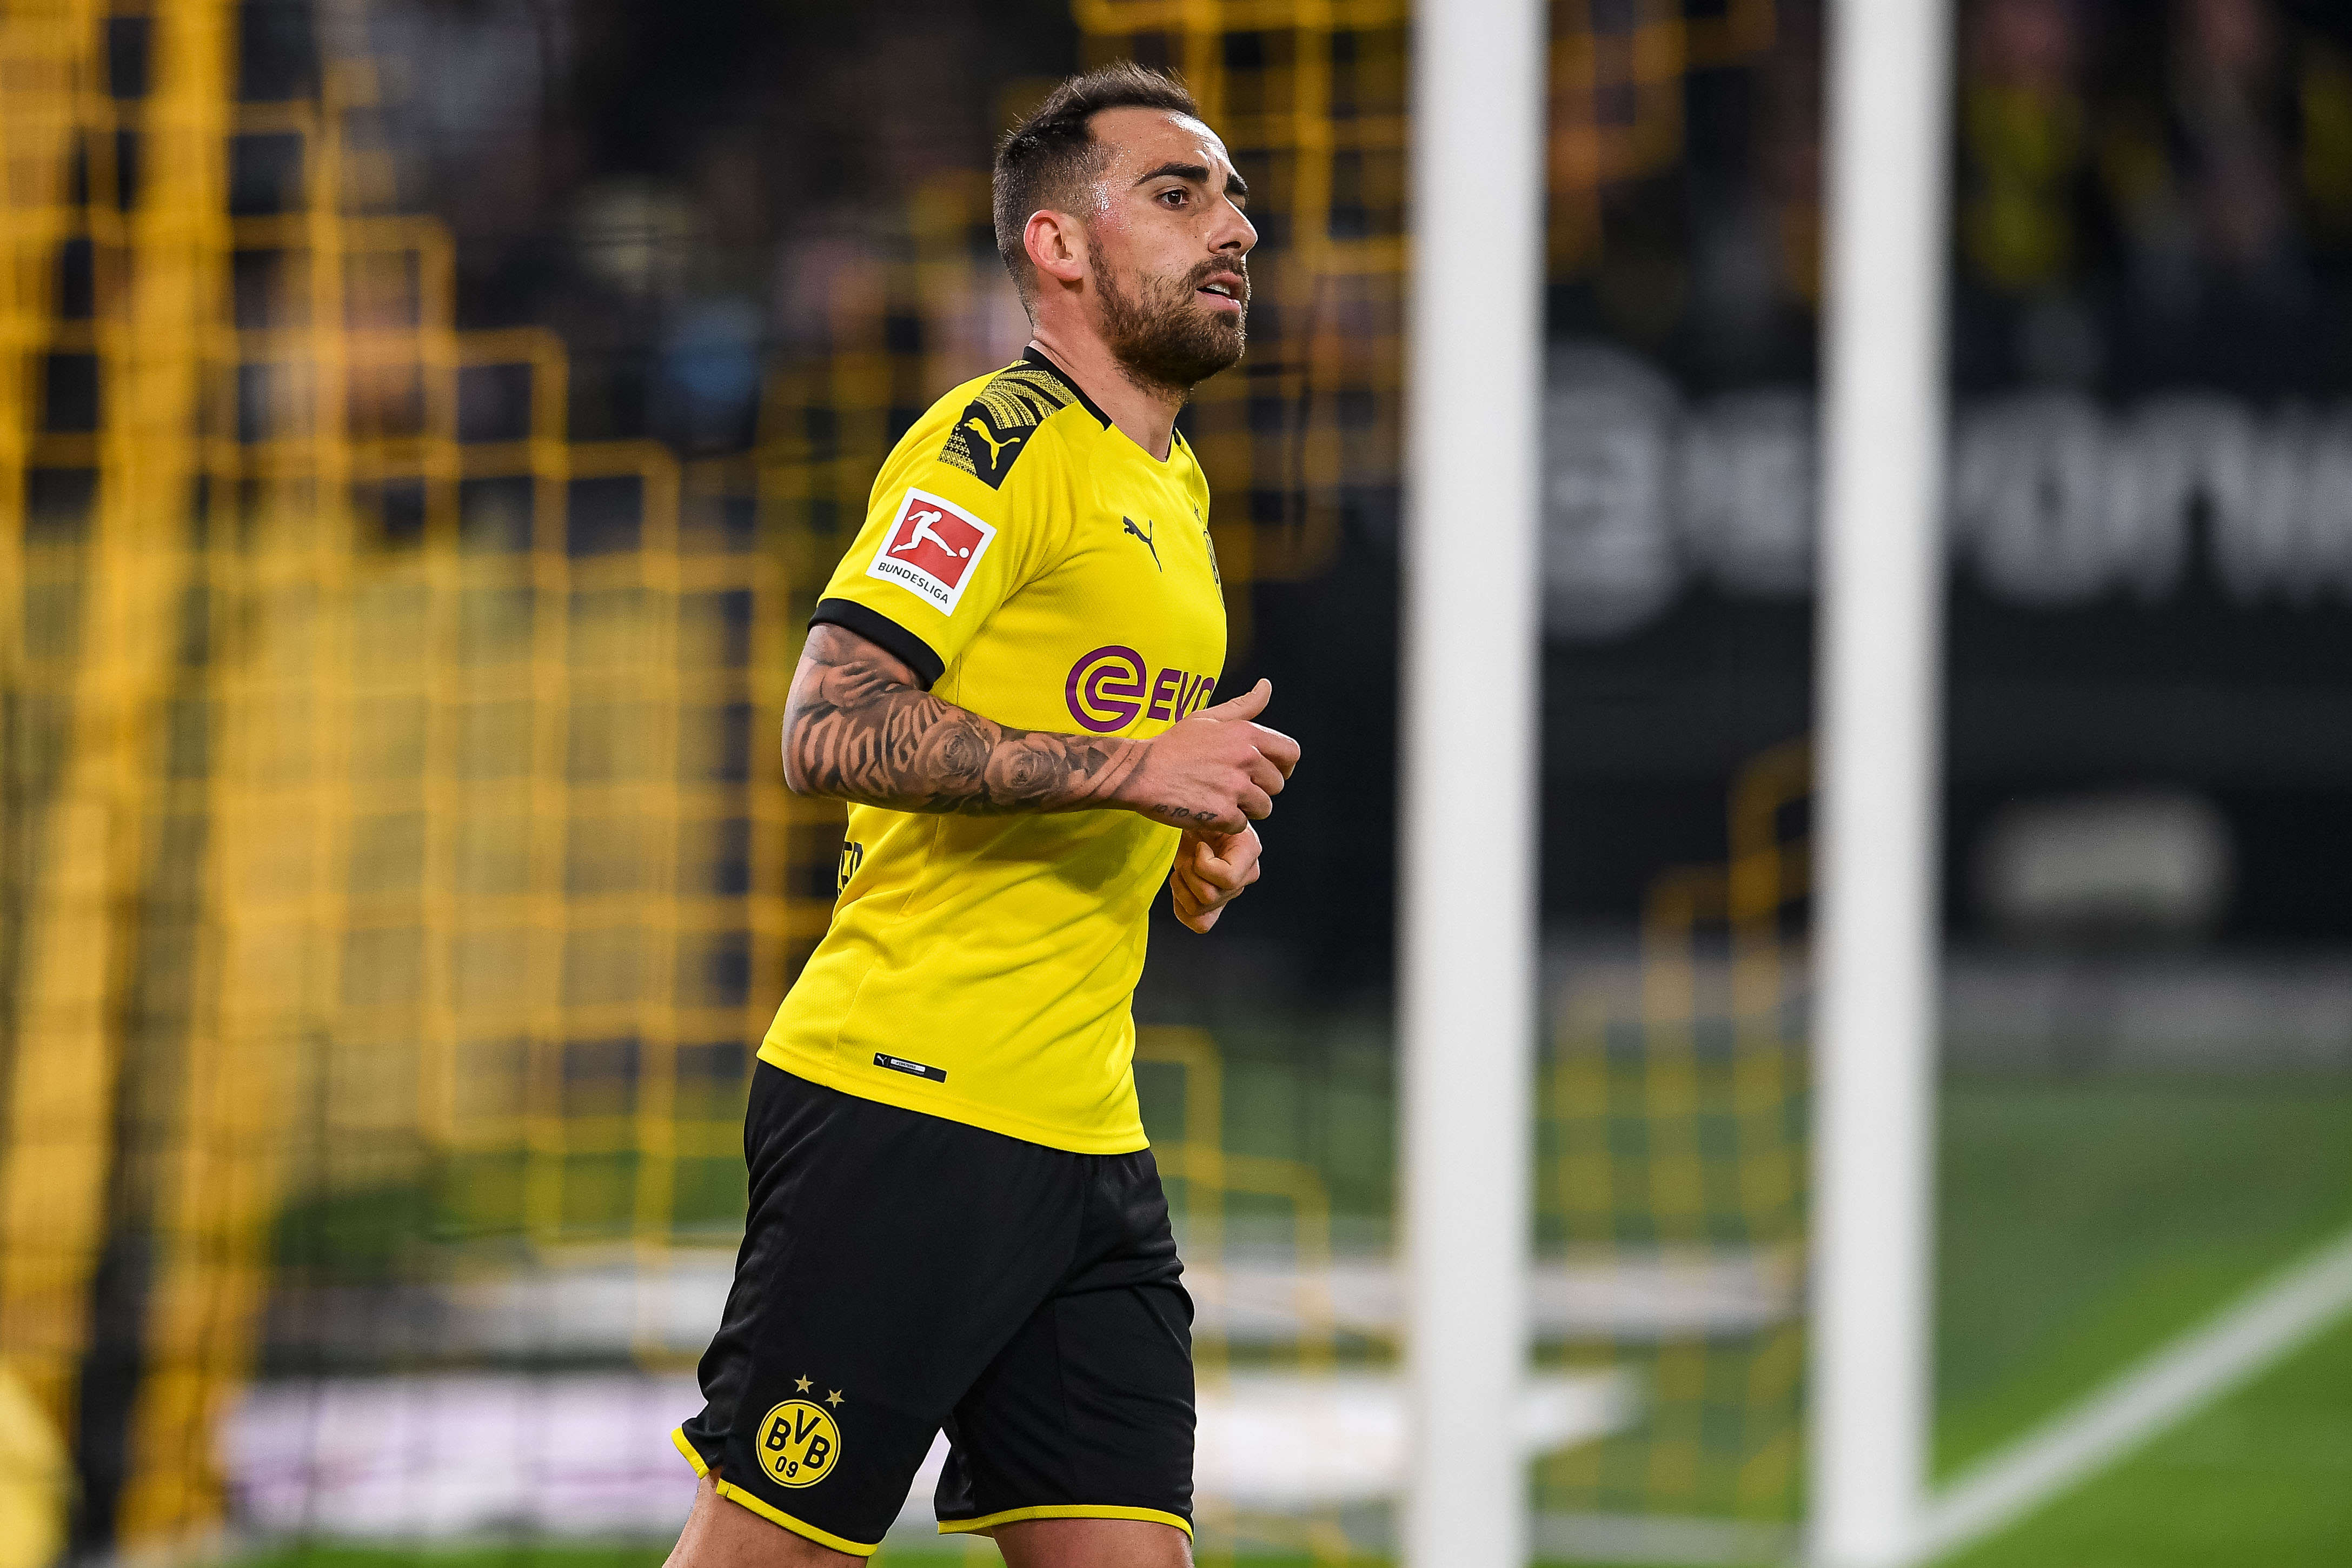 Can Paco Alcacer lead Dortmund to a win on Saturday? (Photo by Jörg Schüler/Bongarts/Getty Images)